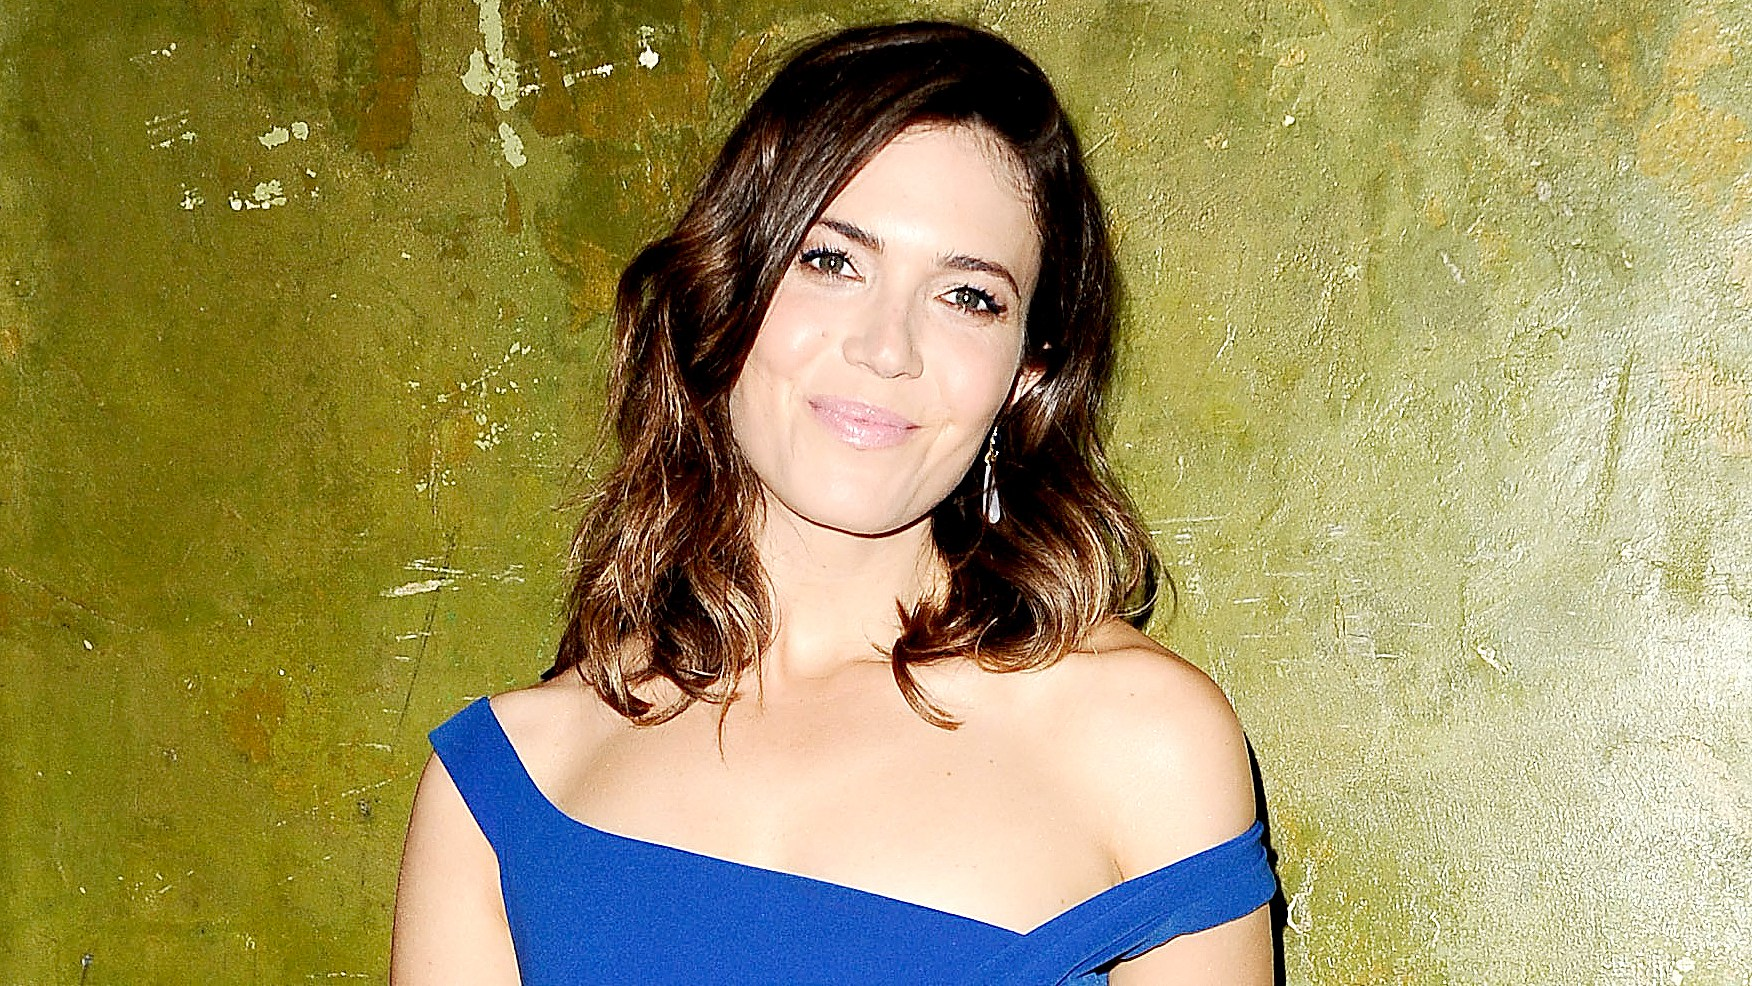 """Mandy Moore attends the """"This Is Us"""" FYC screening and panel at The Cinerama Dome on June 7, 2017 in Los Angeles, California."""